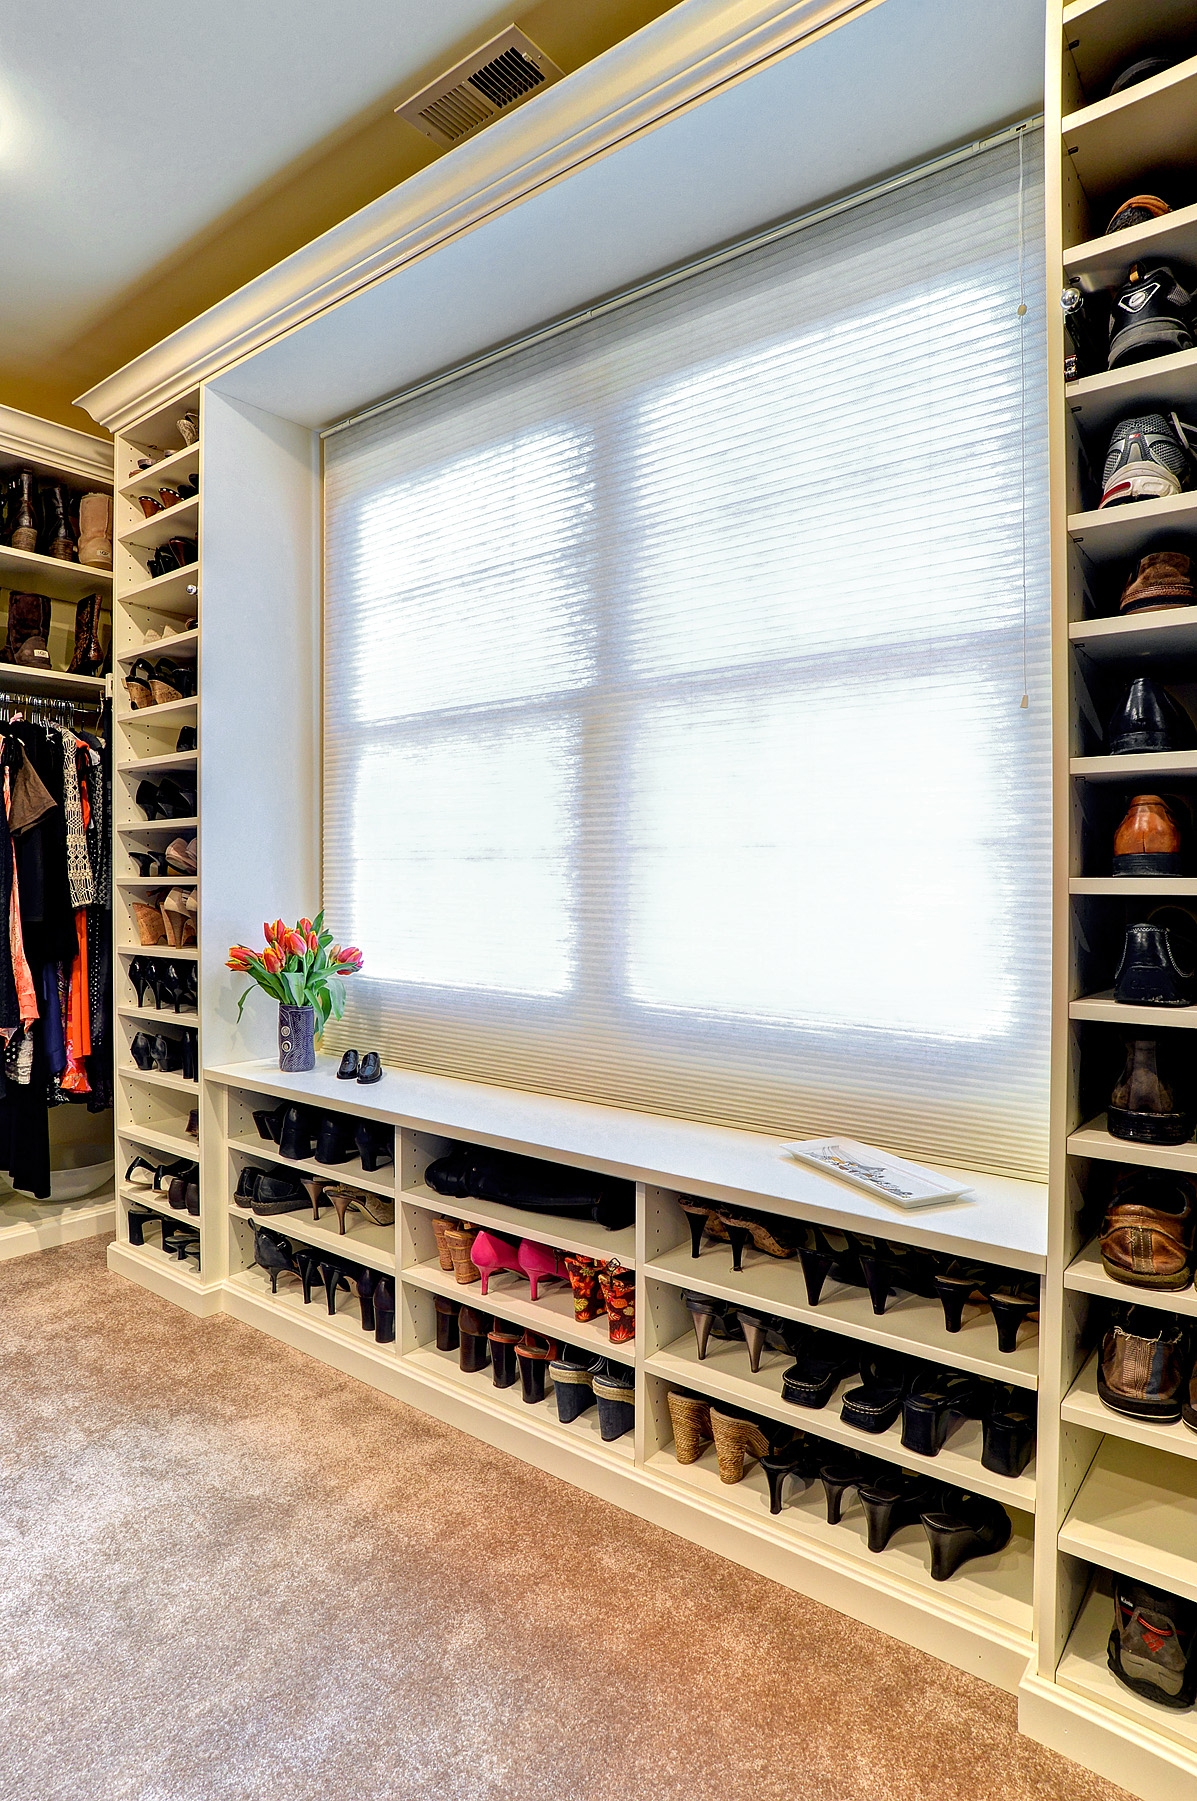 Reach in closet with shoes organized around window